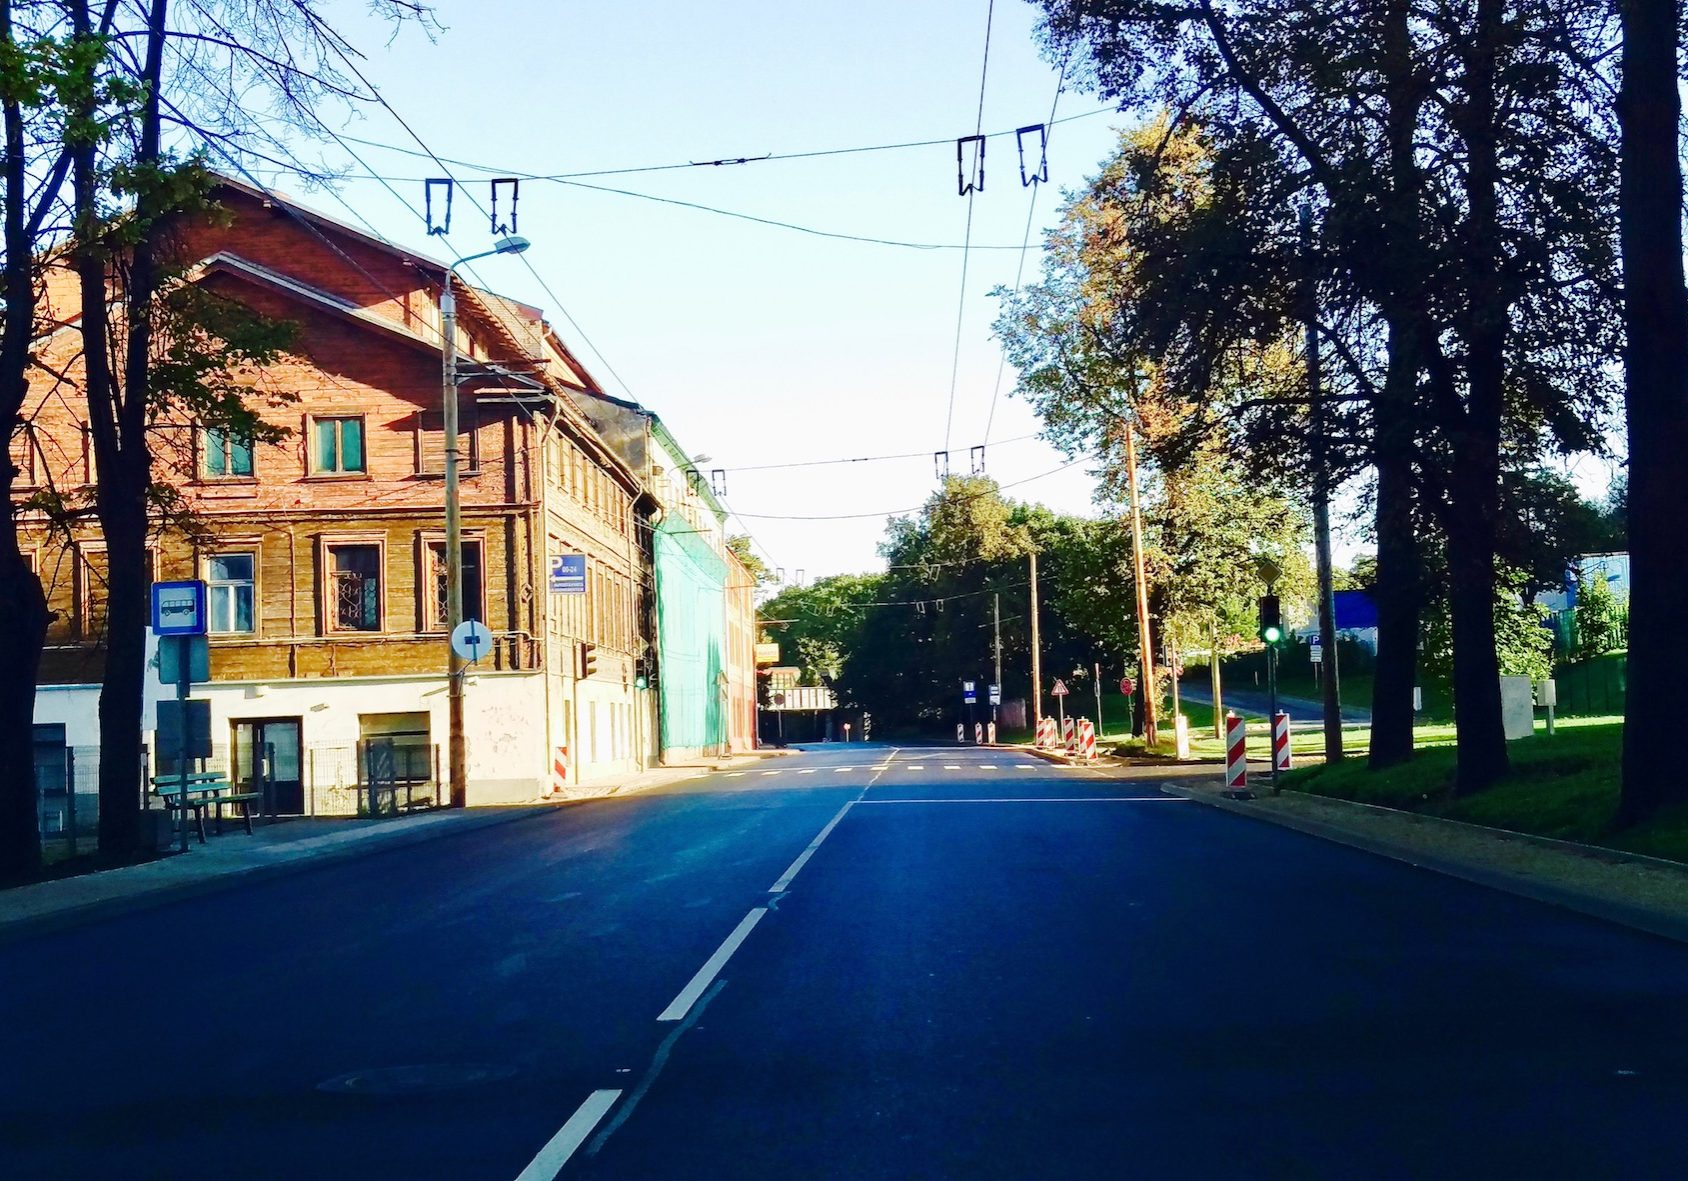 brasa-neighborhood-duntes-street-riga-city